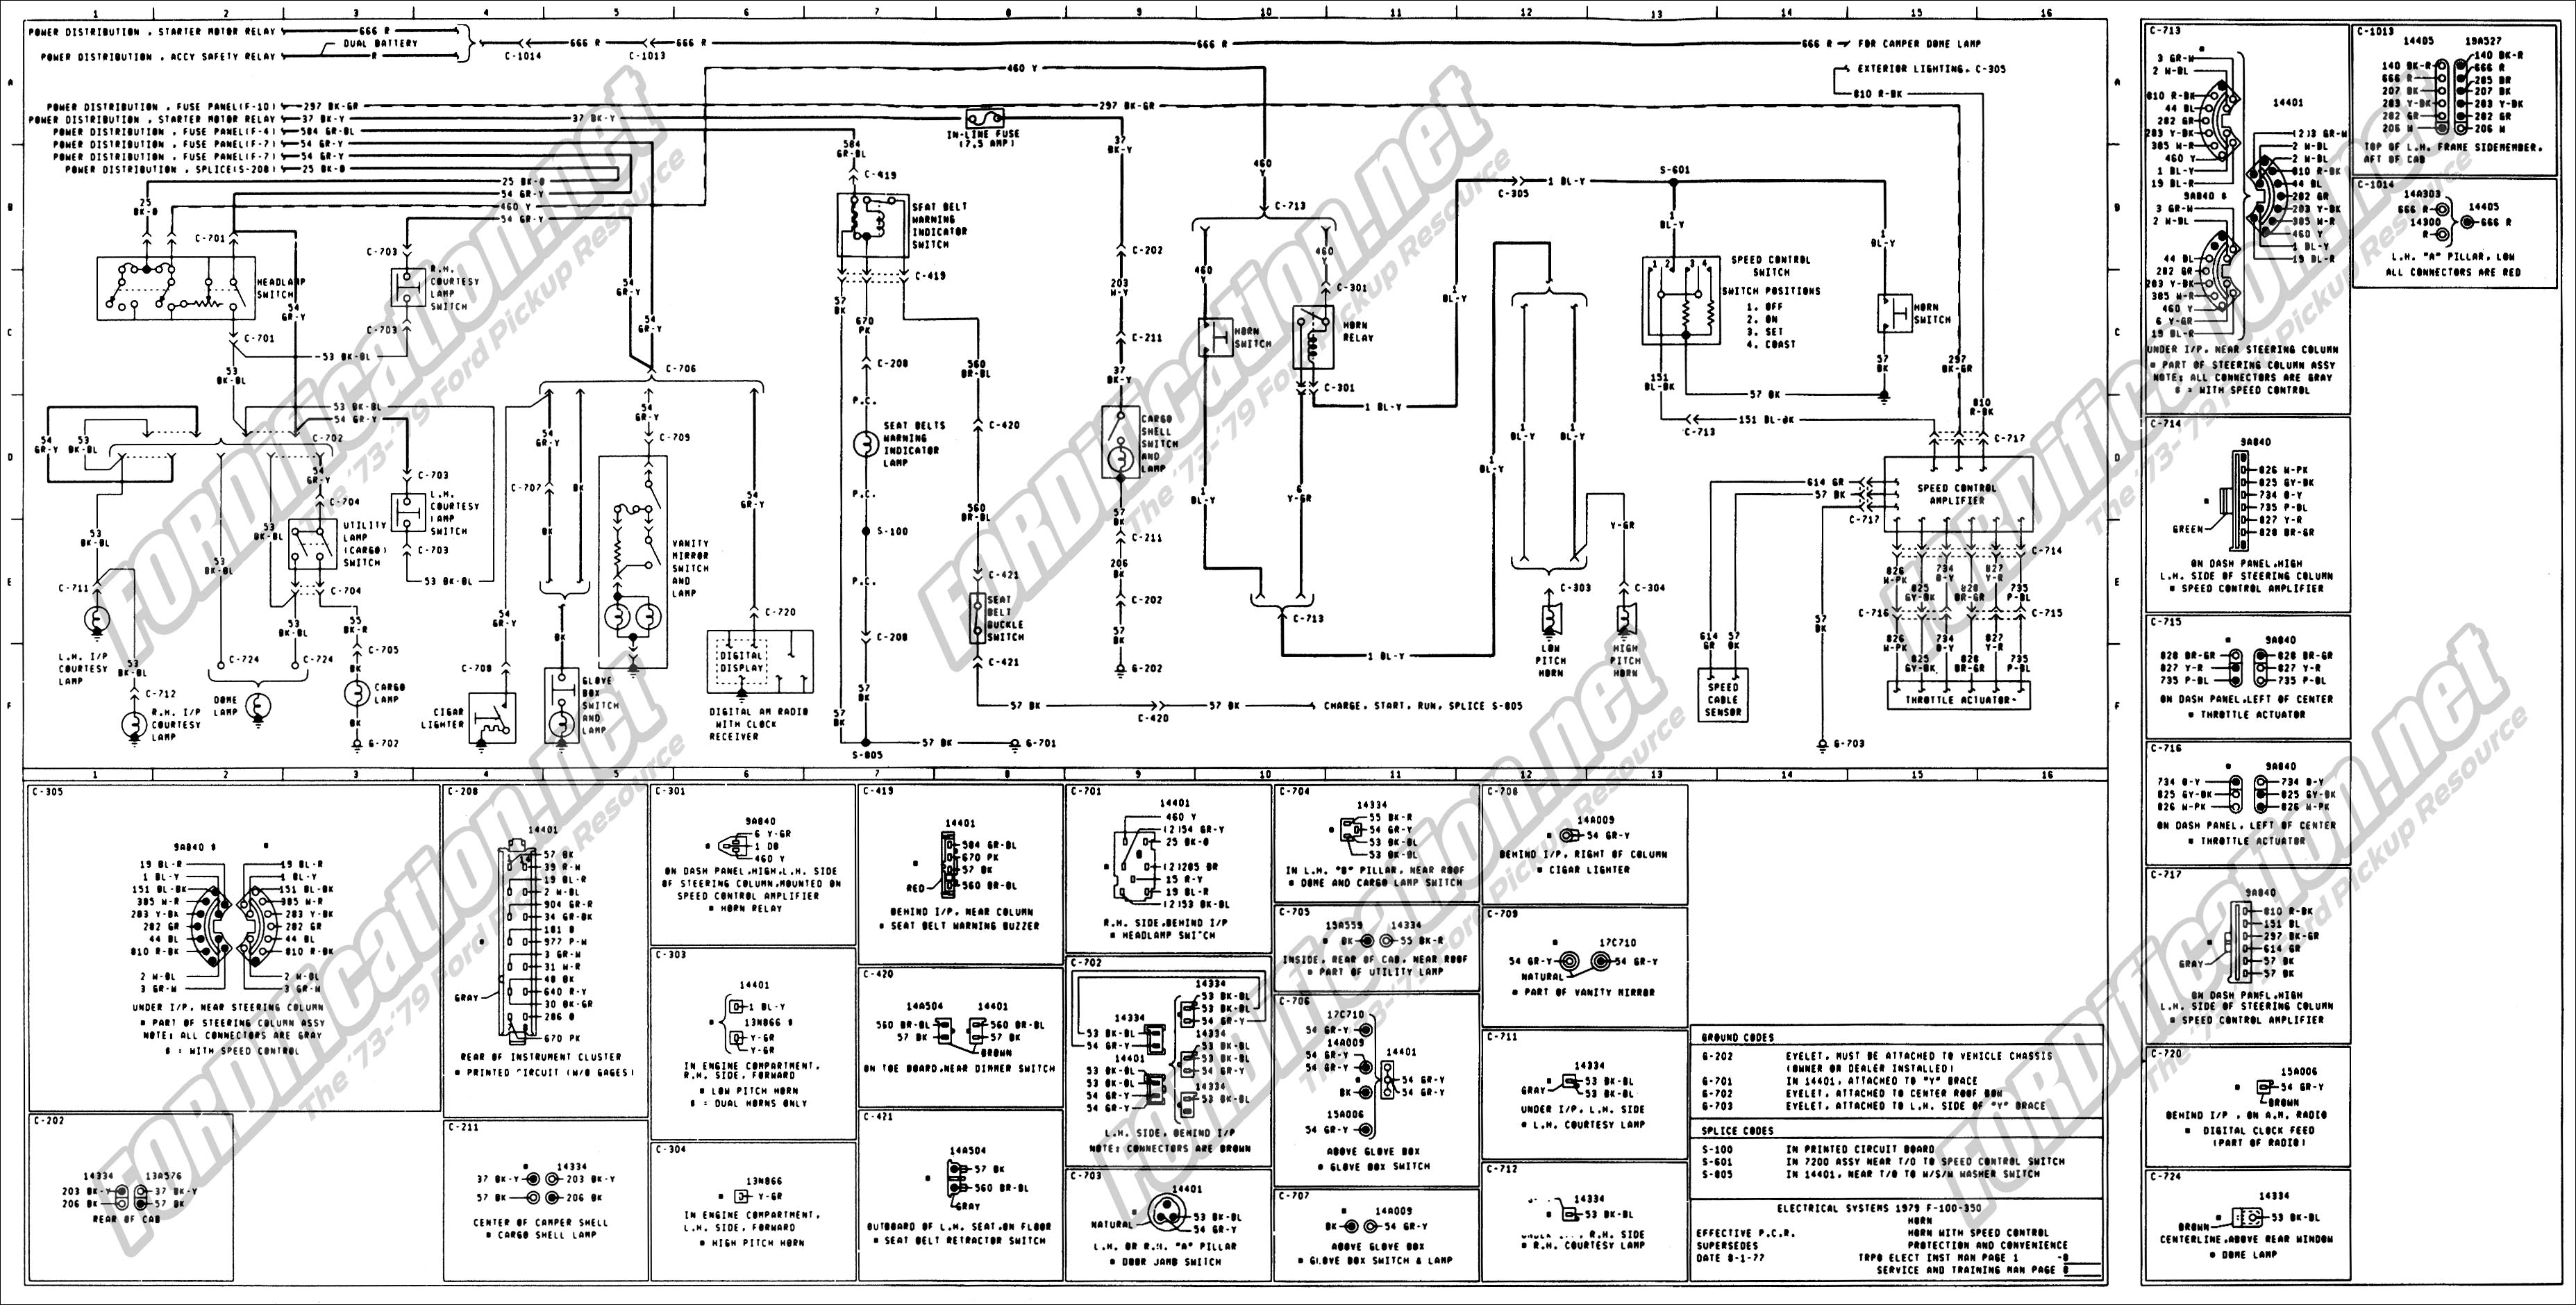 1973 1979 ford truck wiring diagrams schematics fordification net rh fordification net 1978 ford f250 tail light wiring diagram 1978 ford f250 wiring schematic